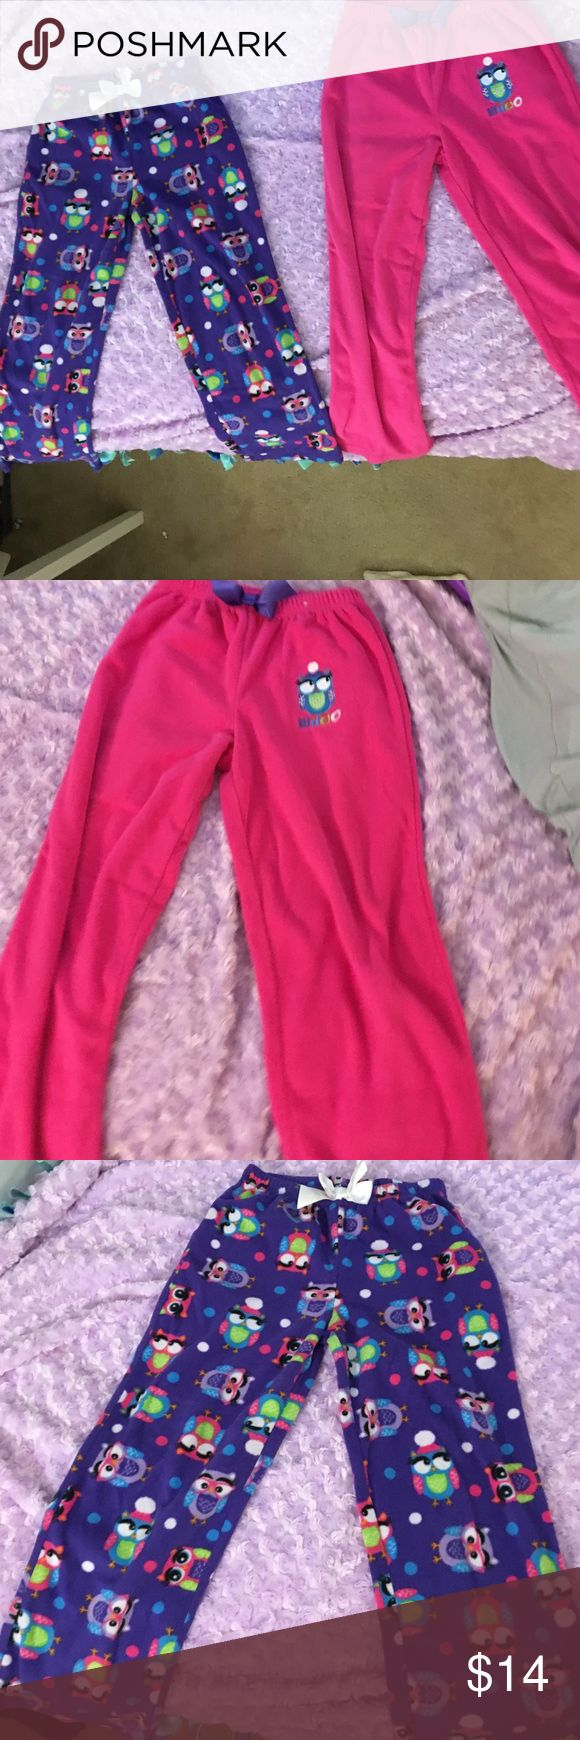 Owl Pajama Pants Set Size: 10 (kids) Adorable Owl Pajama pants from St❤️eve, perfect condition, used only a couple times, washed and ready! St❤️eve Pajamas Pajama Bottoms